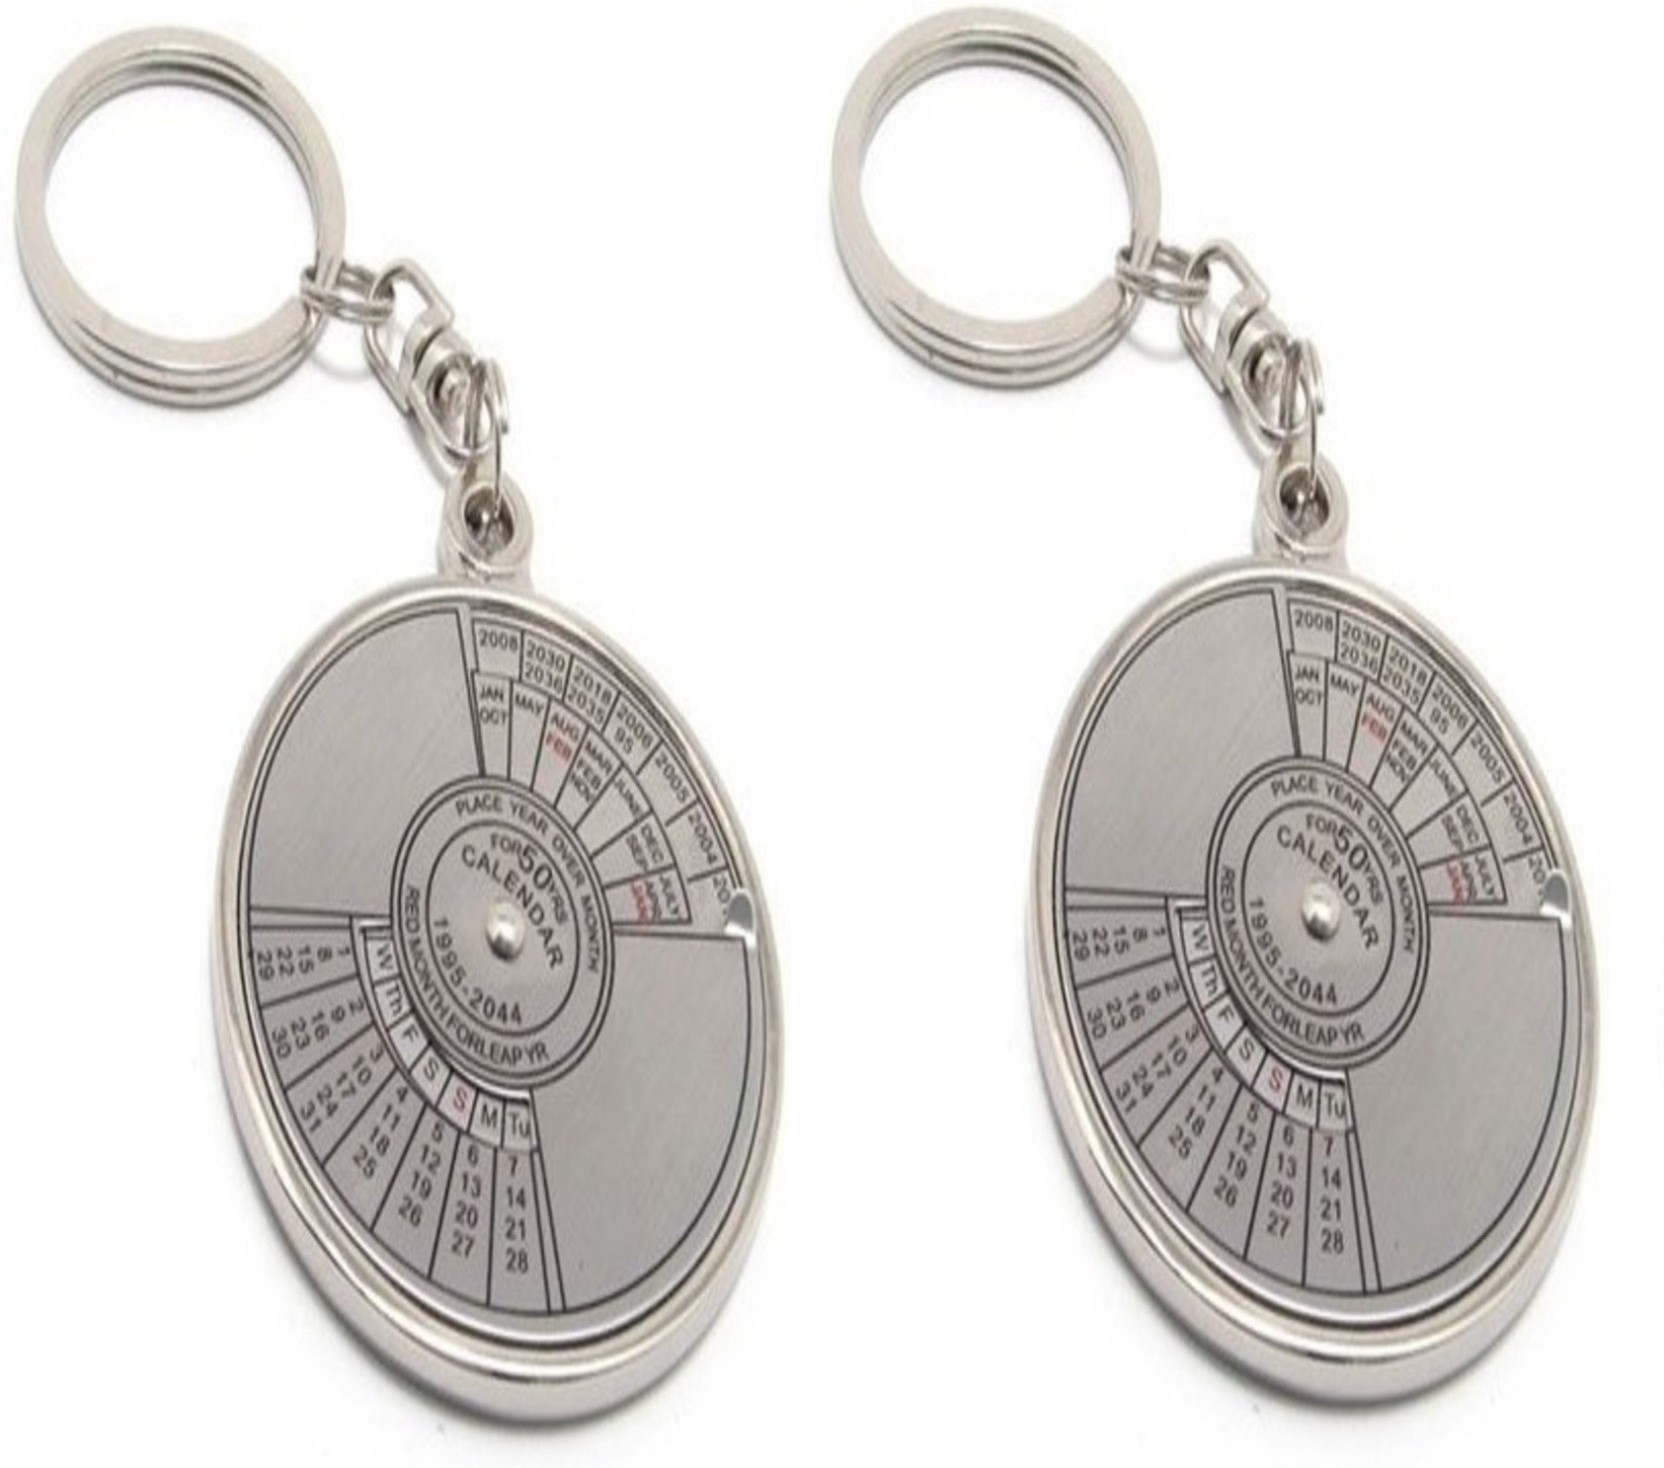 Ncc Ncc359 Set Of 2 Date Perpetual With Calendar Up To 50 Years Key